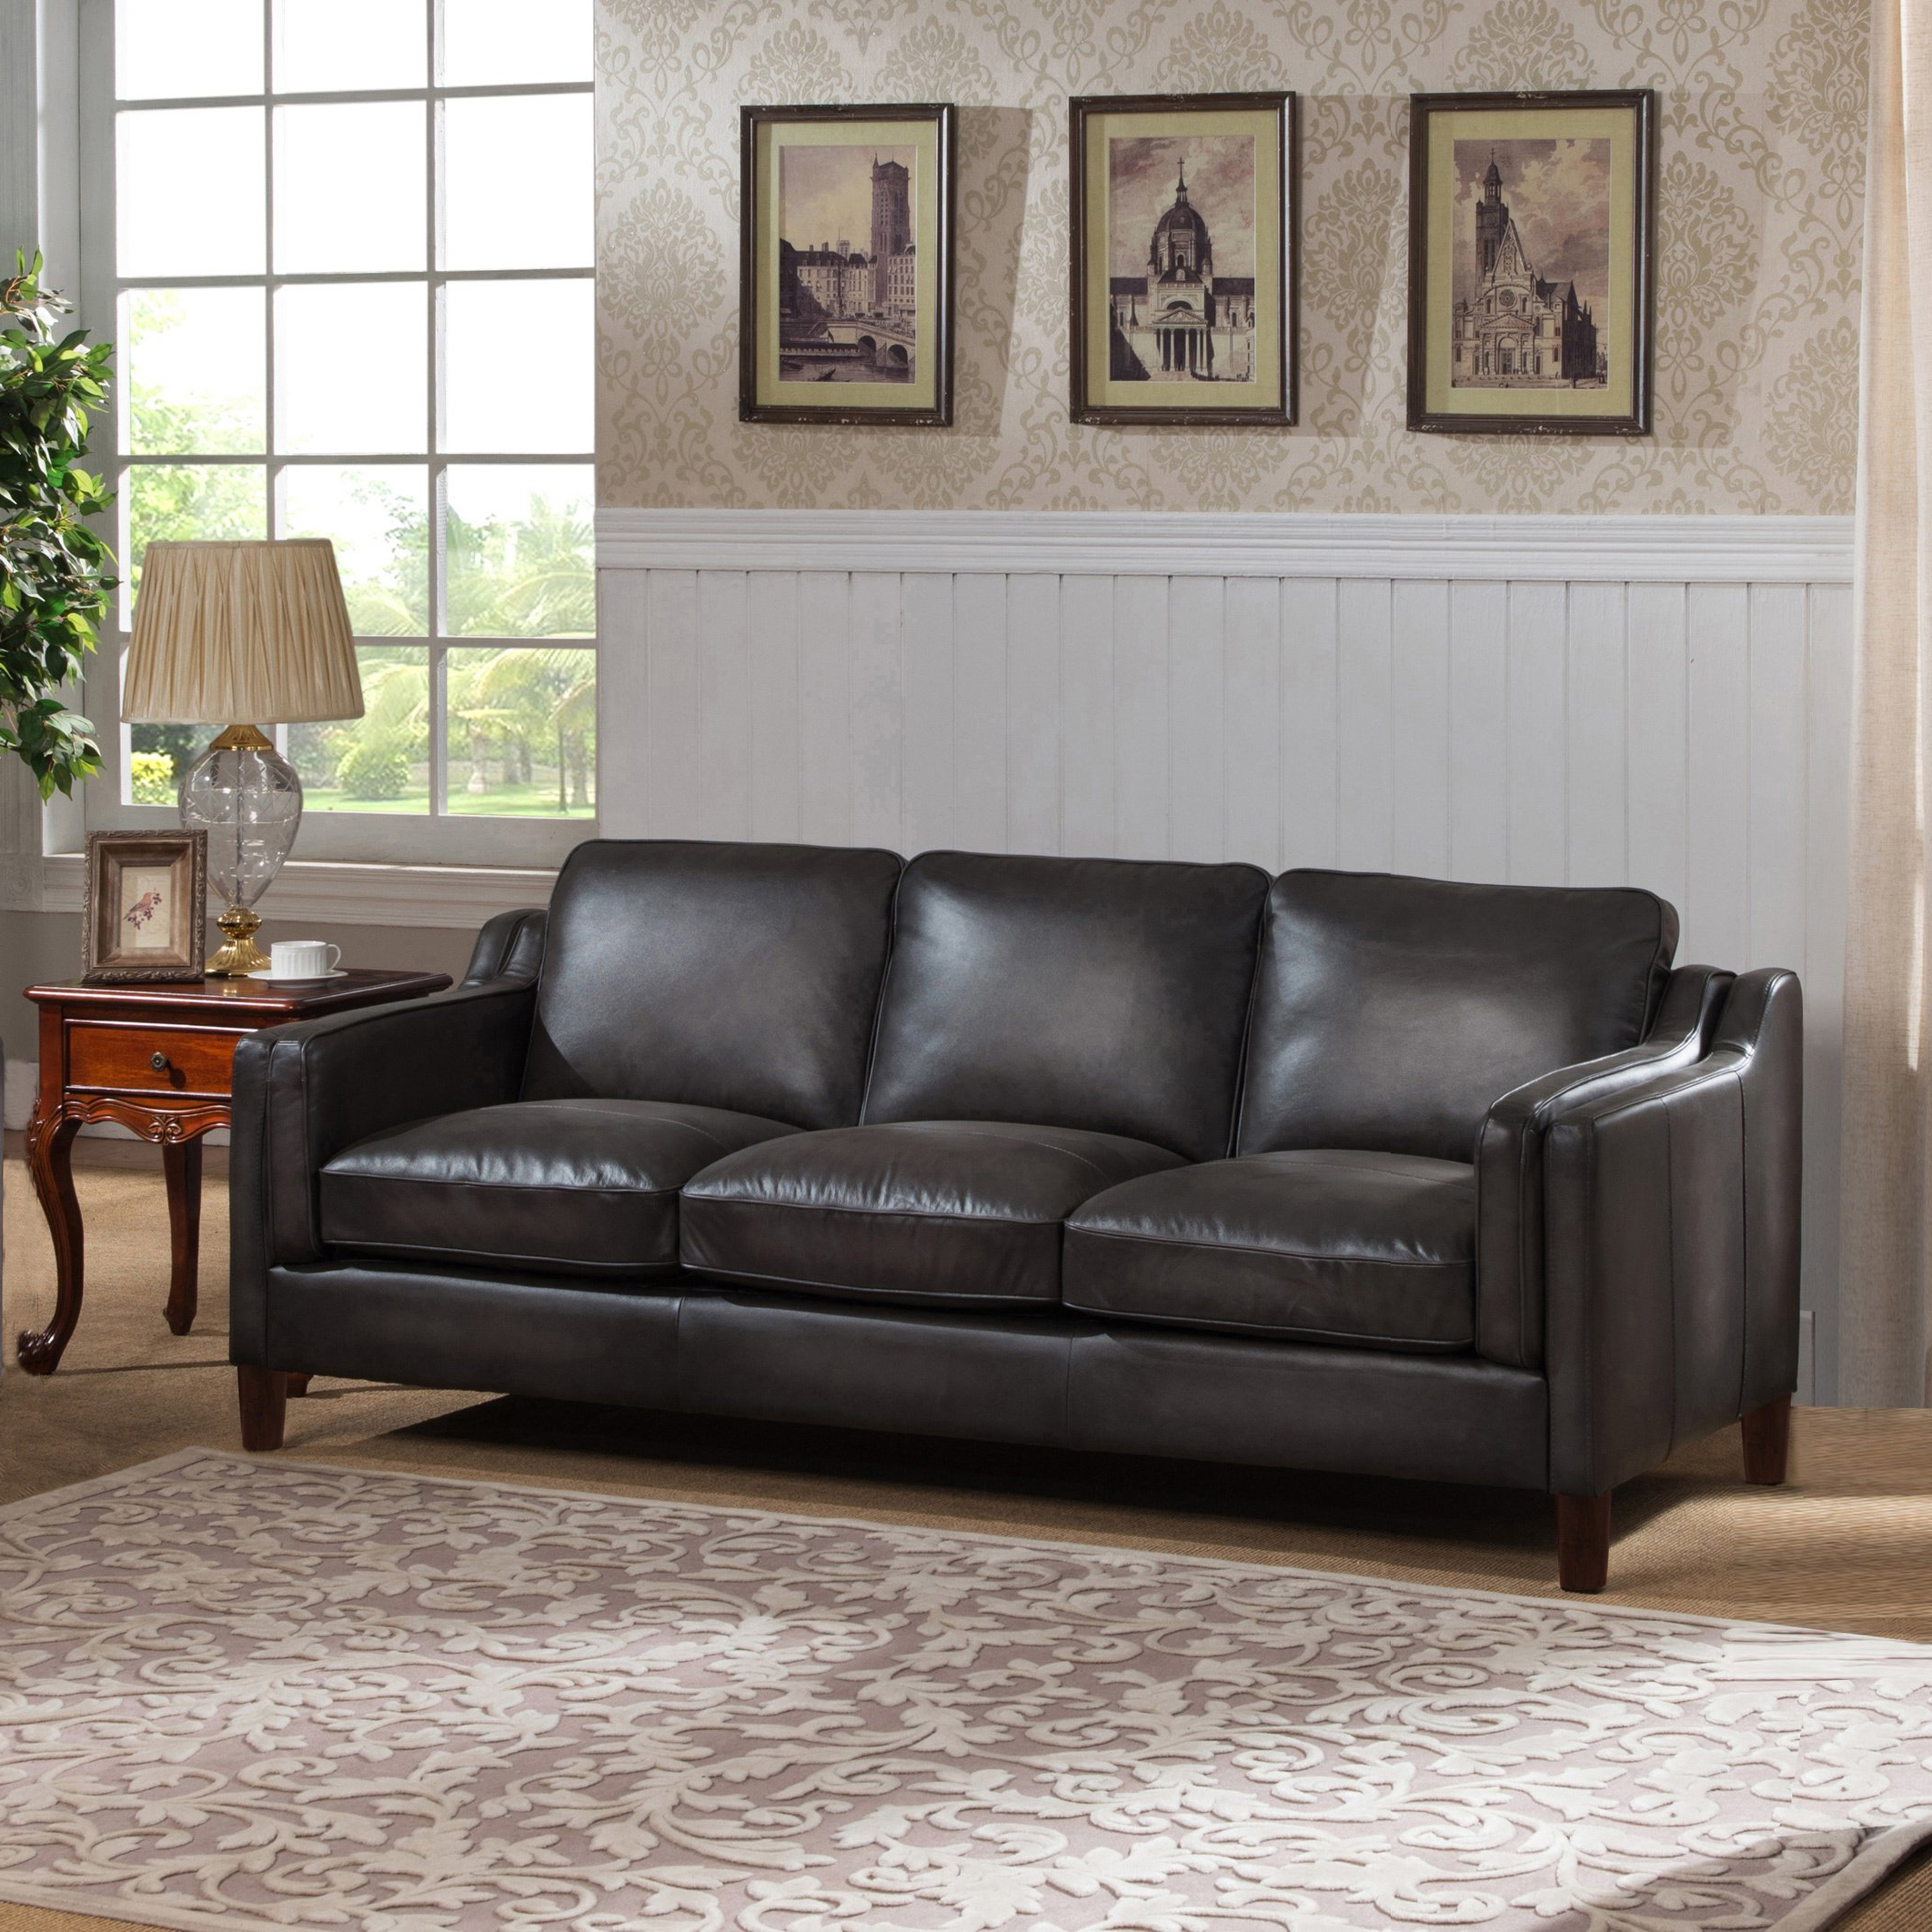 Fashionable Ames Arm Sofa Chairs For Shop Ames Premium Hand Rubbed Grey Top Grain Leather Sofa And Chair (Gallery 11 of 20)